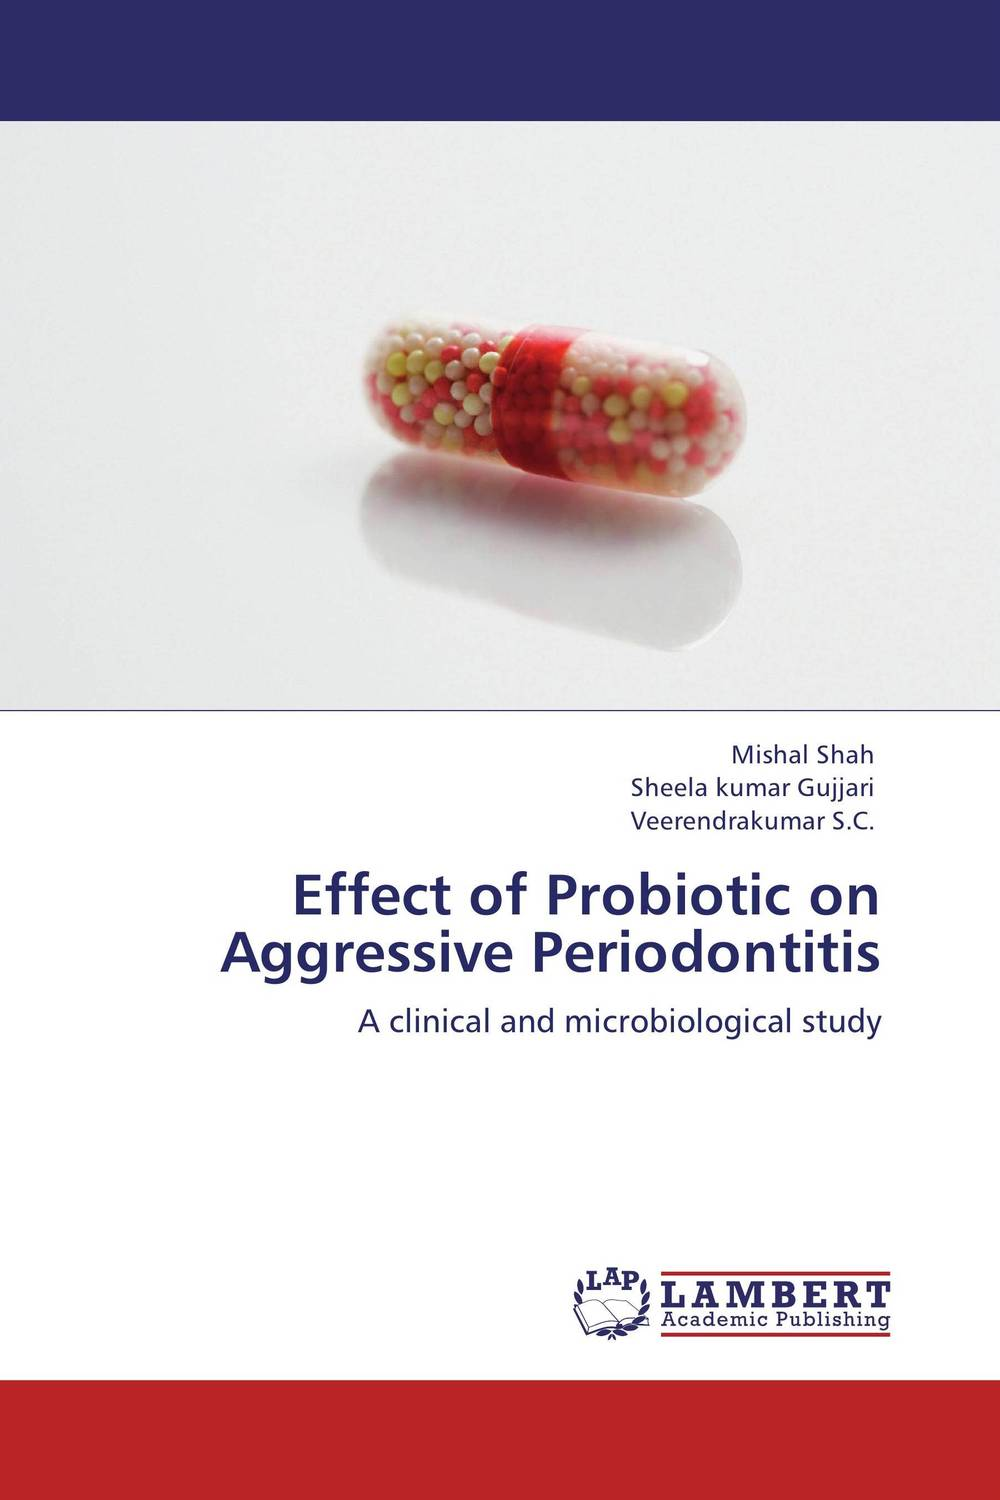 купить Effect of Probiotic on Aggressive Periodontitis недорого